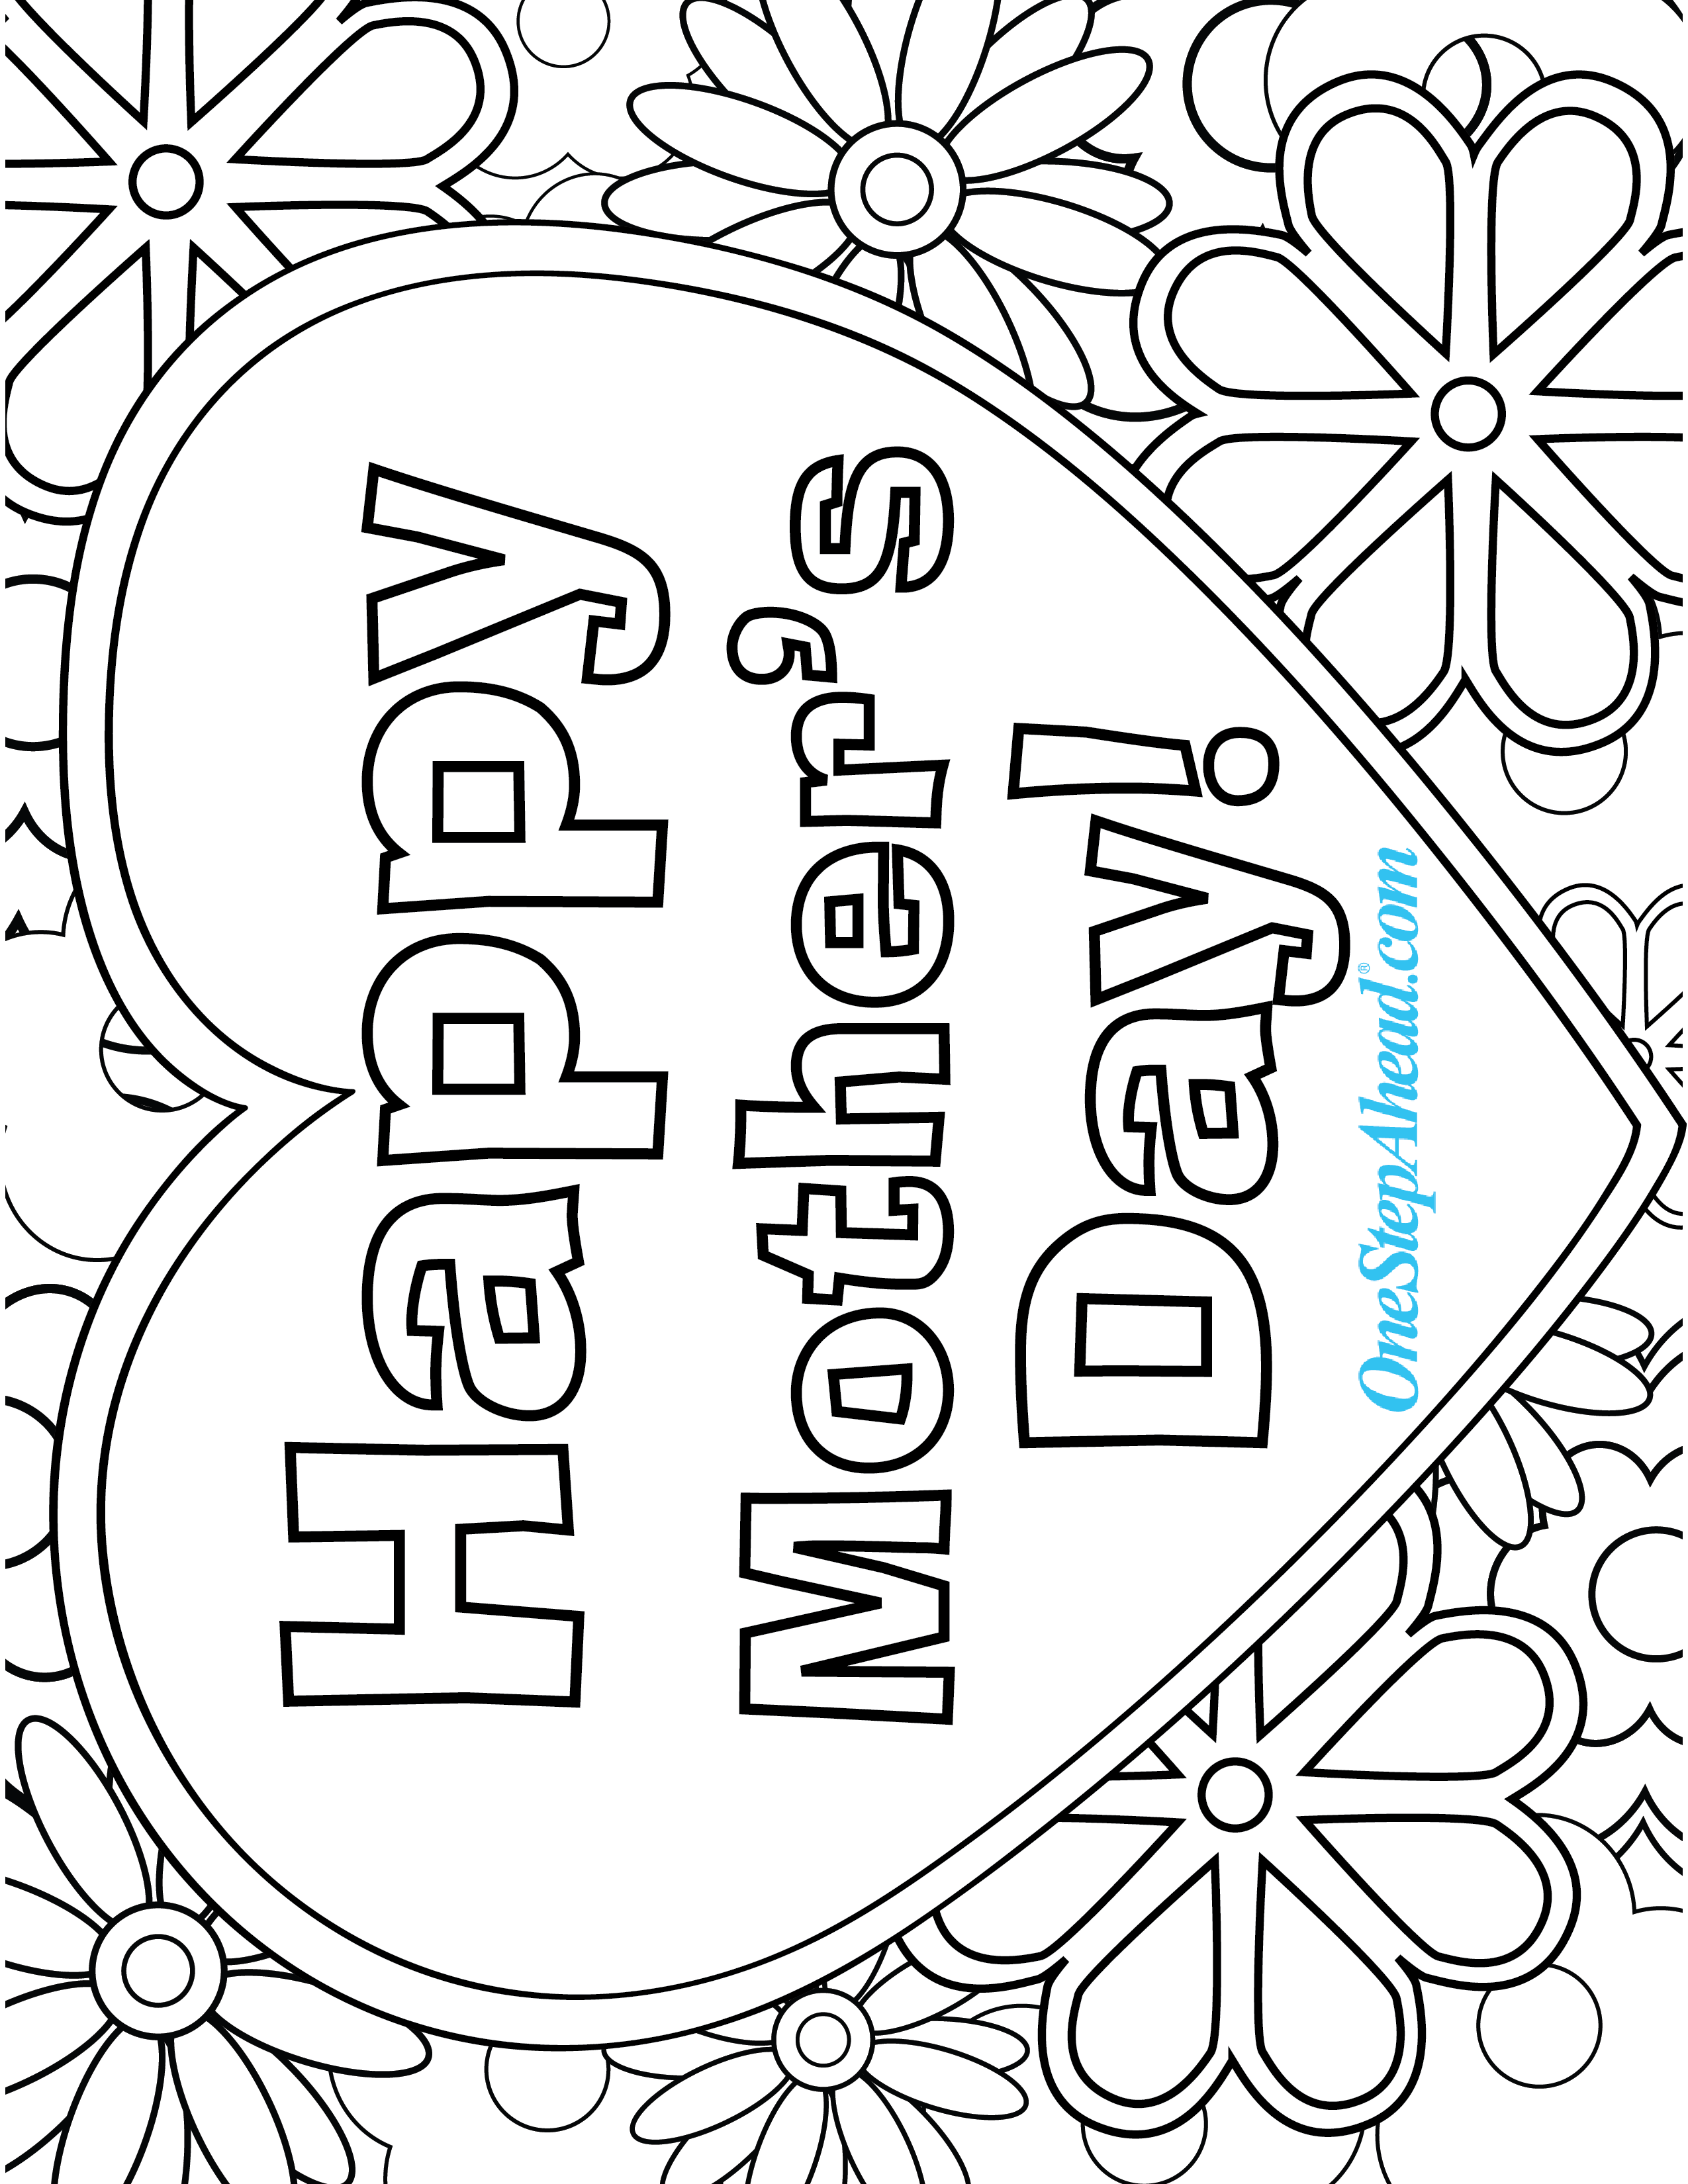 Happy Mother\'s Day free coloring page printable for kids! | Holiday ...